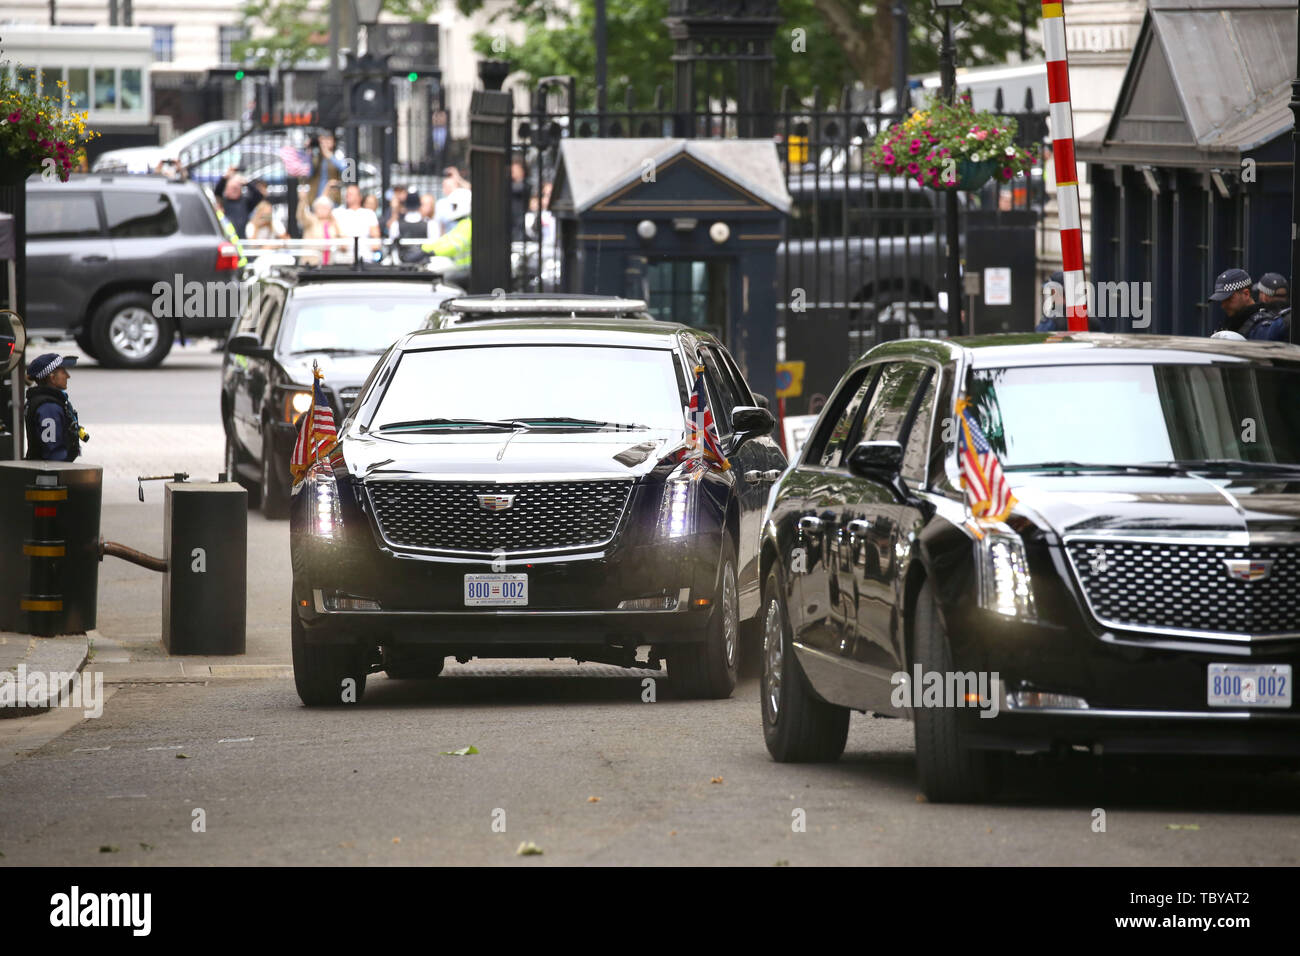 London, UK. 04th June, 2019. 'The Beast' vehicle bringing Donald Trump (President of the United States), and First Lady Melania Trump, arrives in Downing Street. The President met The Prime Minister during his state visit to the UK. Donald Trump, State visit, Downing Street, London, UK on June 4, 2019. Credit: Paul Marriott/Alamy Live News Stock Photo